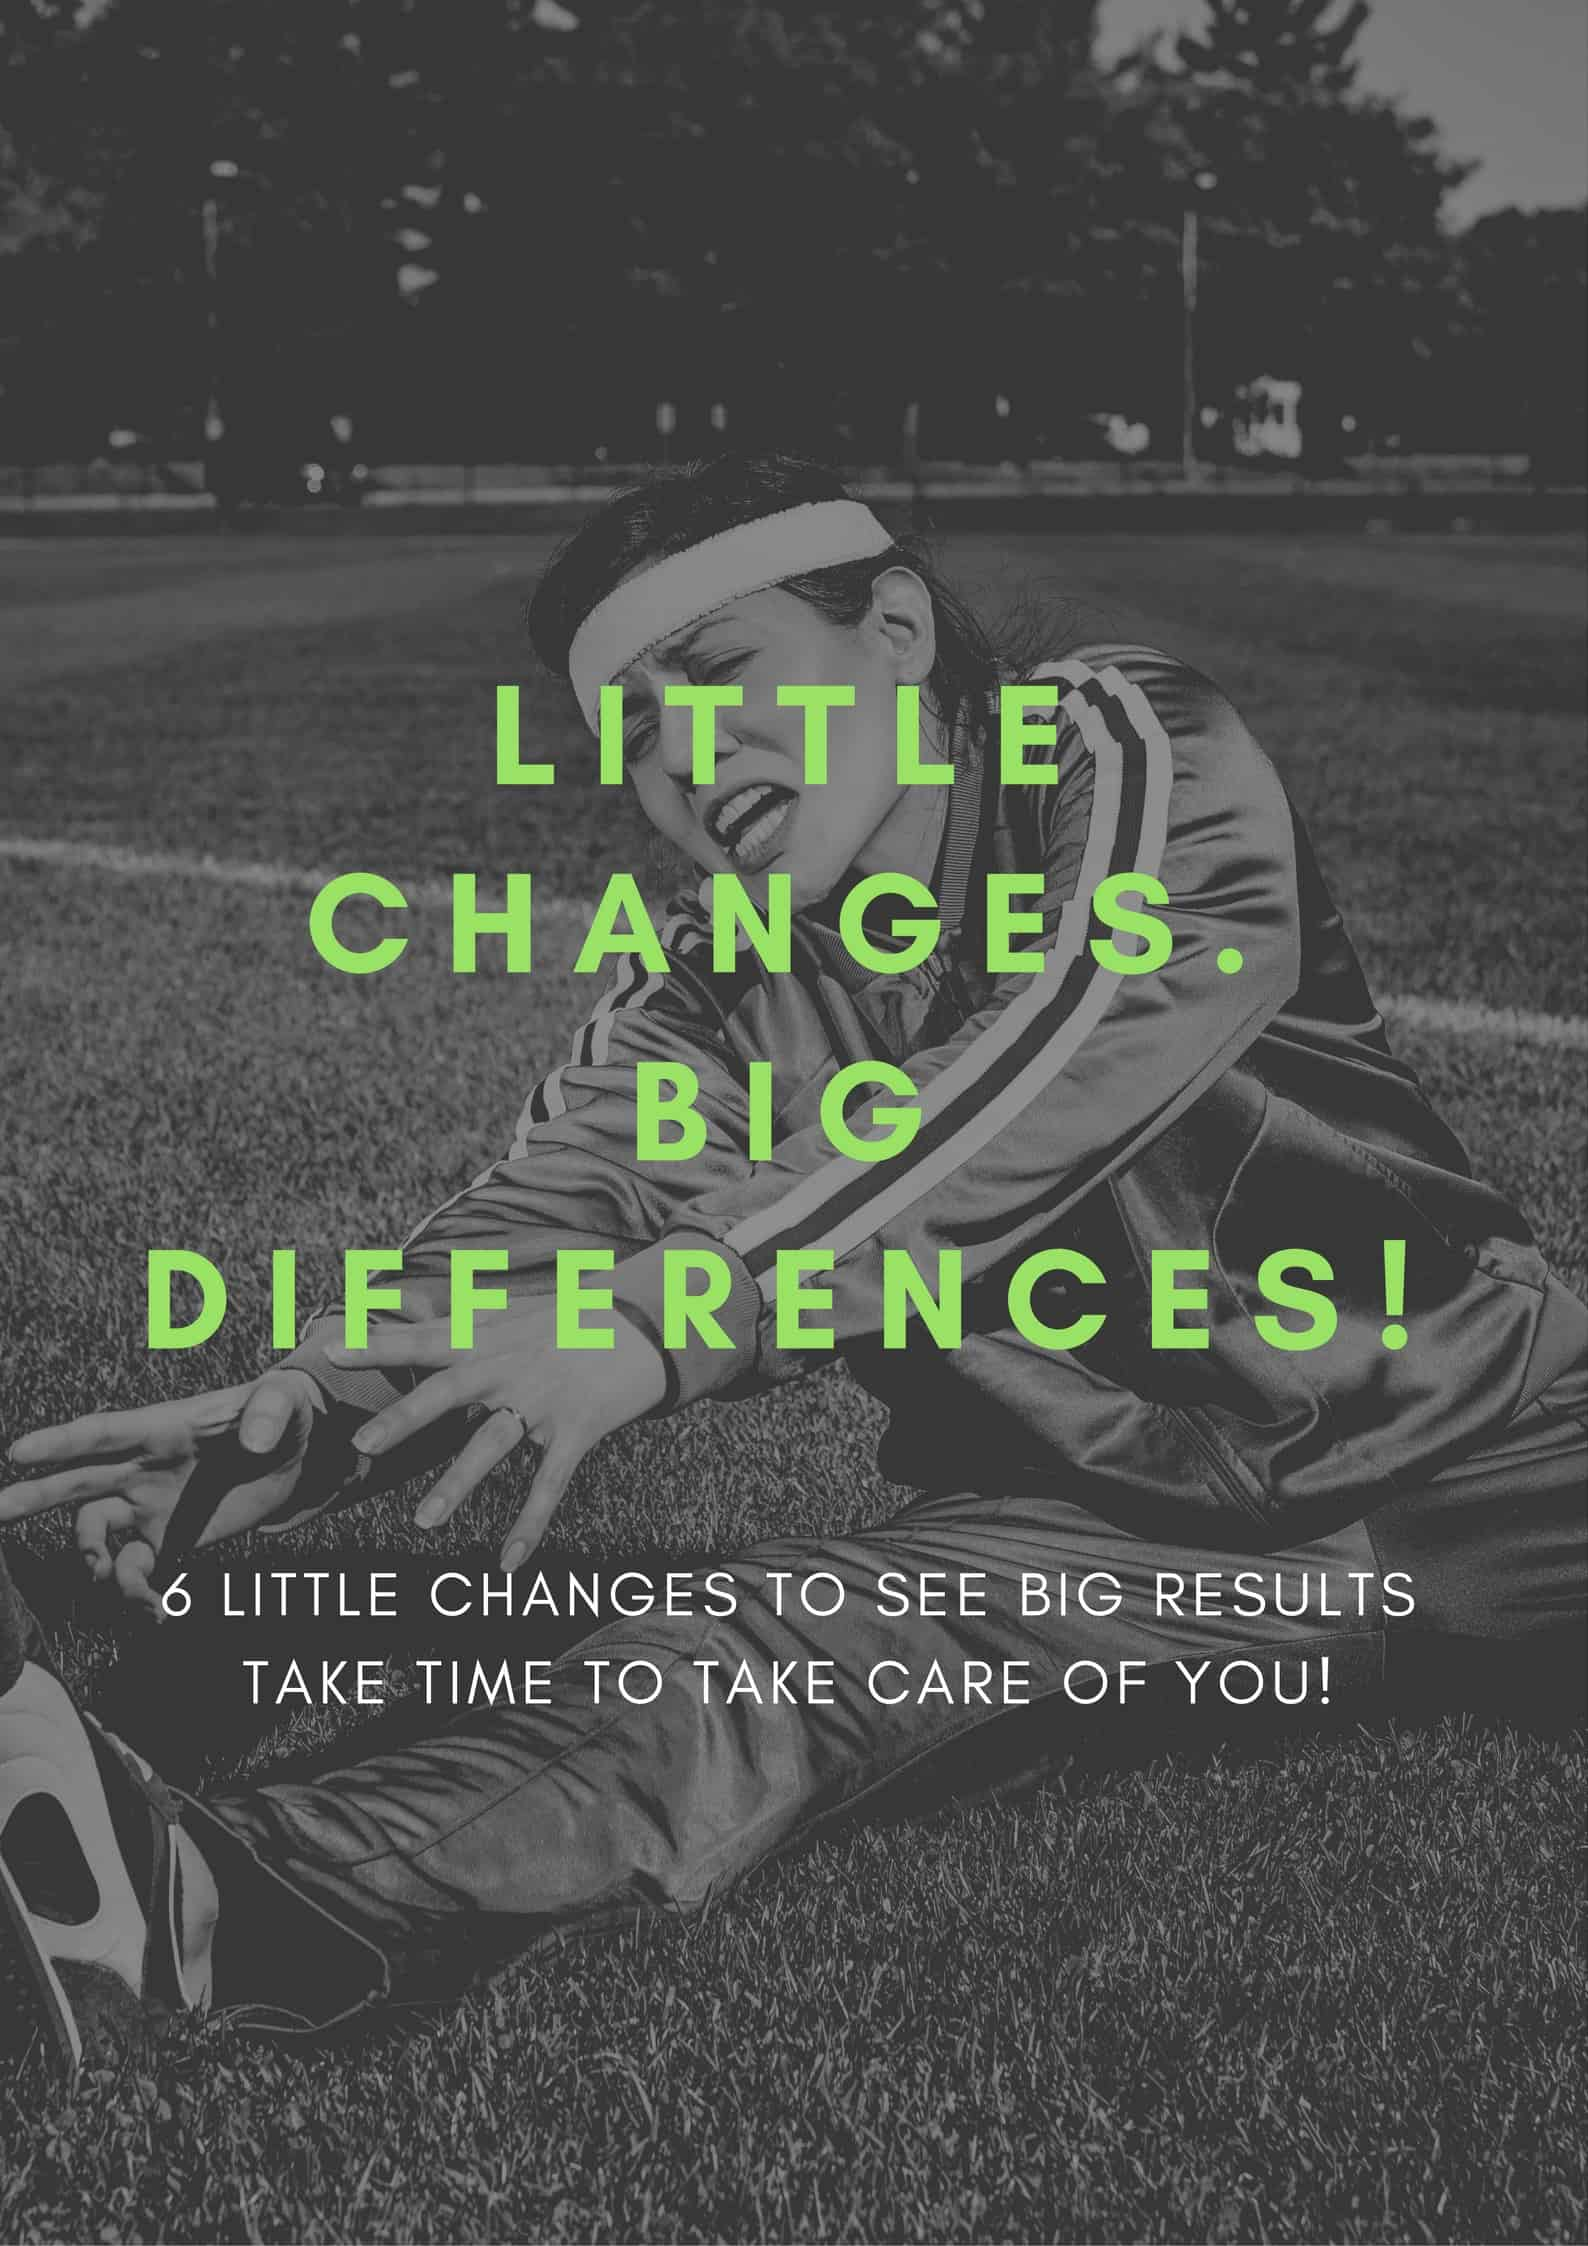 Taking care of you starts with little changes that become big differences. Click here to check out these six little changes and start living a better life today!